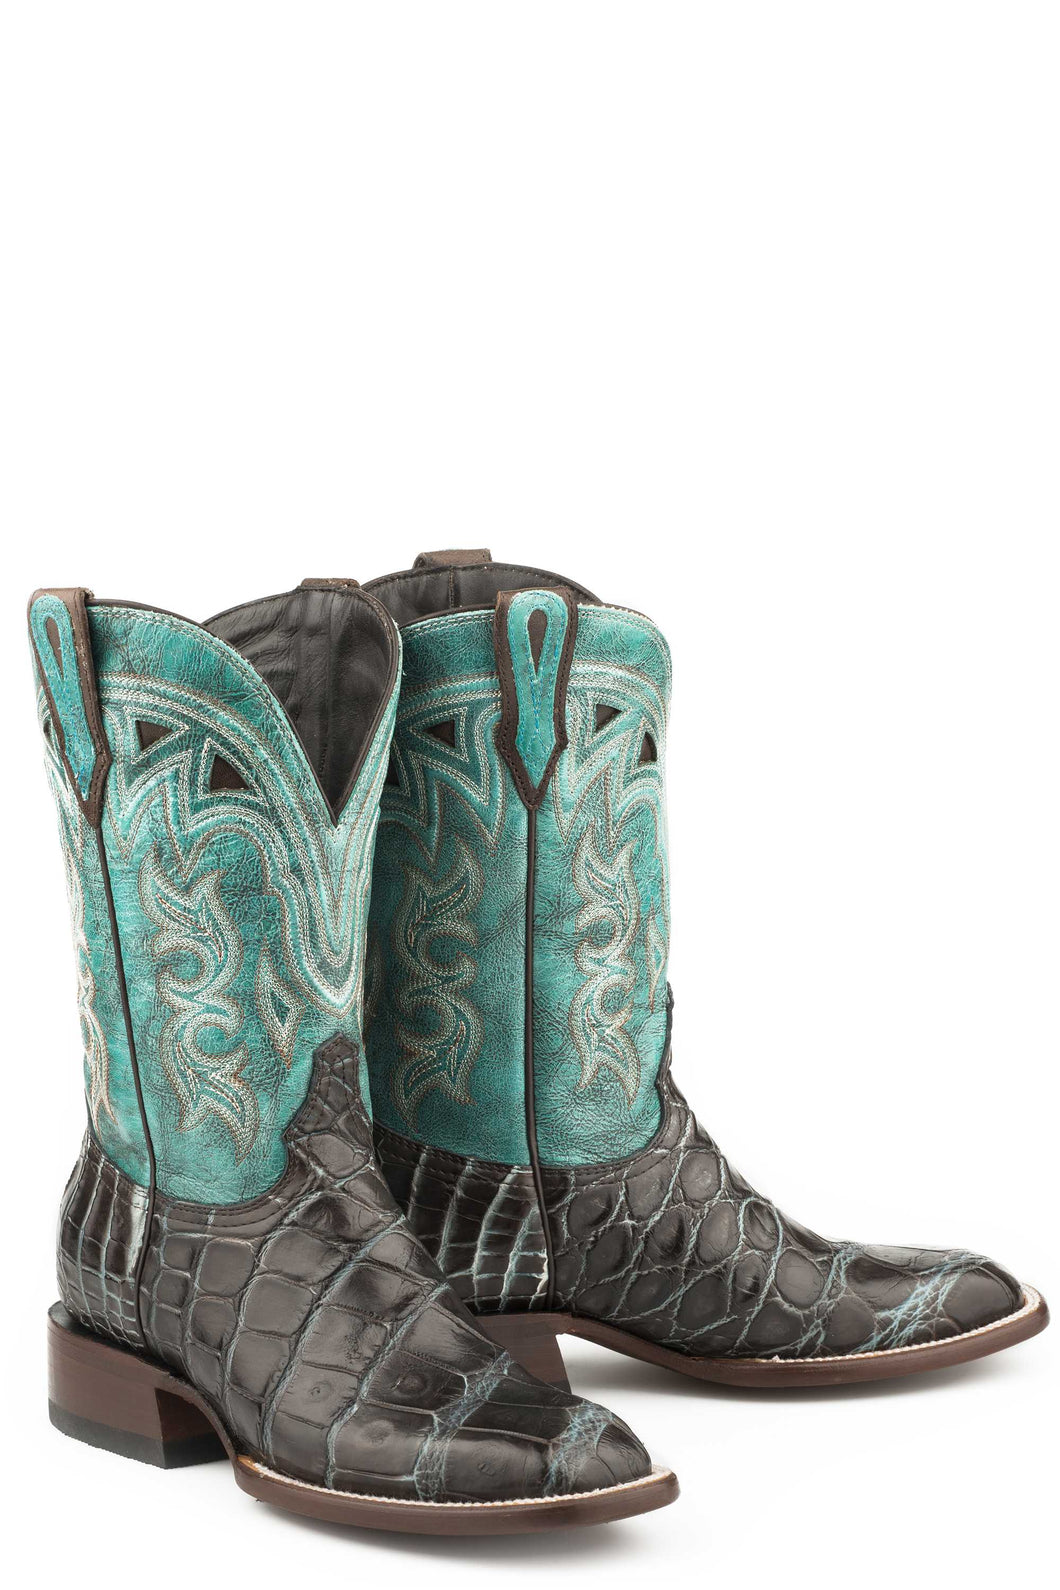 Madrid Boot Womens Boots Brown Alligator Blue Vamp 11